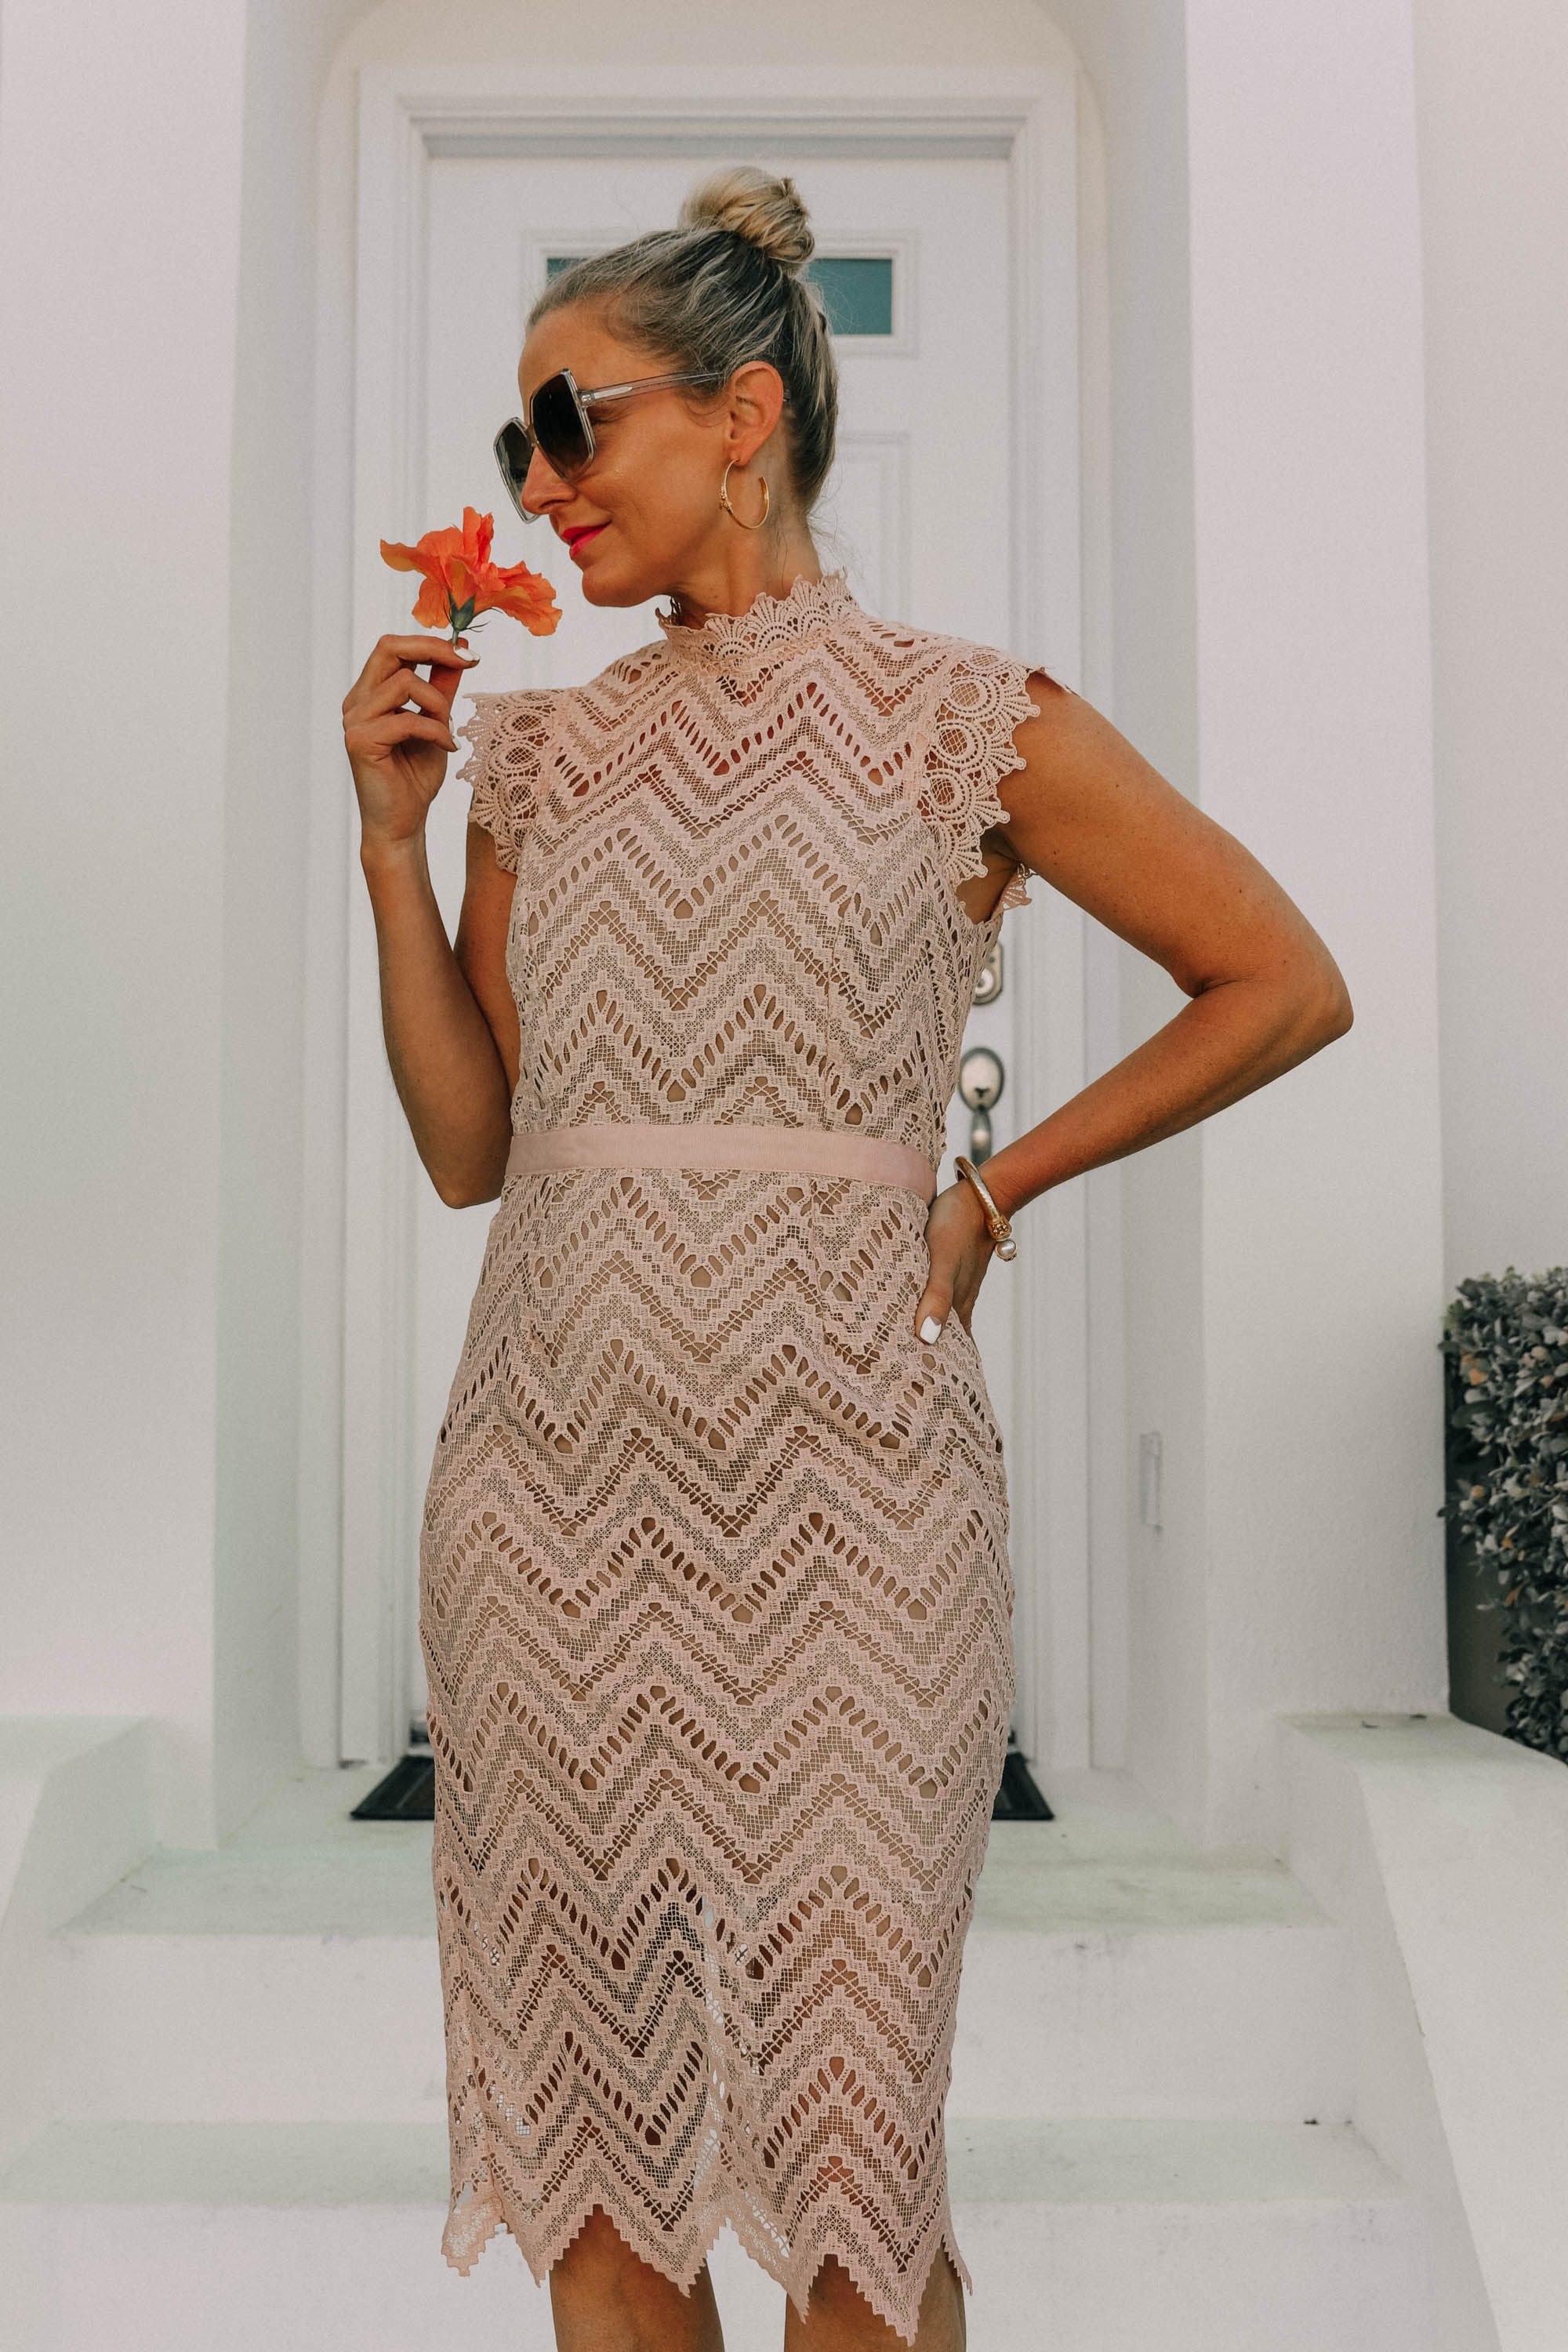 Mother's Day Dresses, Fashion blogger Erin Busbee of BusbeeStyle.com wearing a pink blush lace Bardot dress in the Bahamas styled with nude Valentino rockstud sandals and gold jewelry from Nordstrom